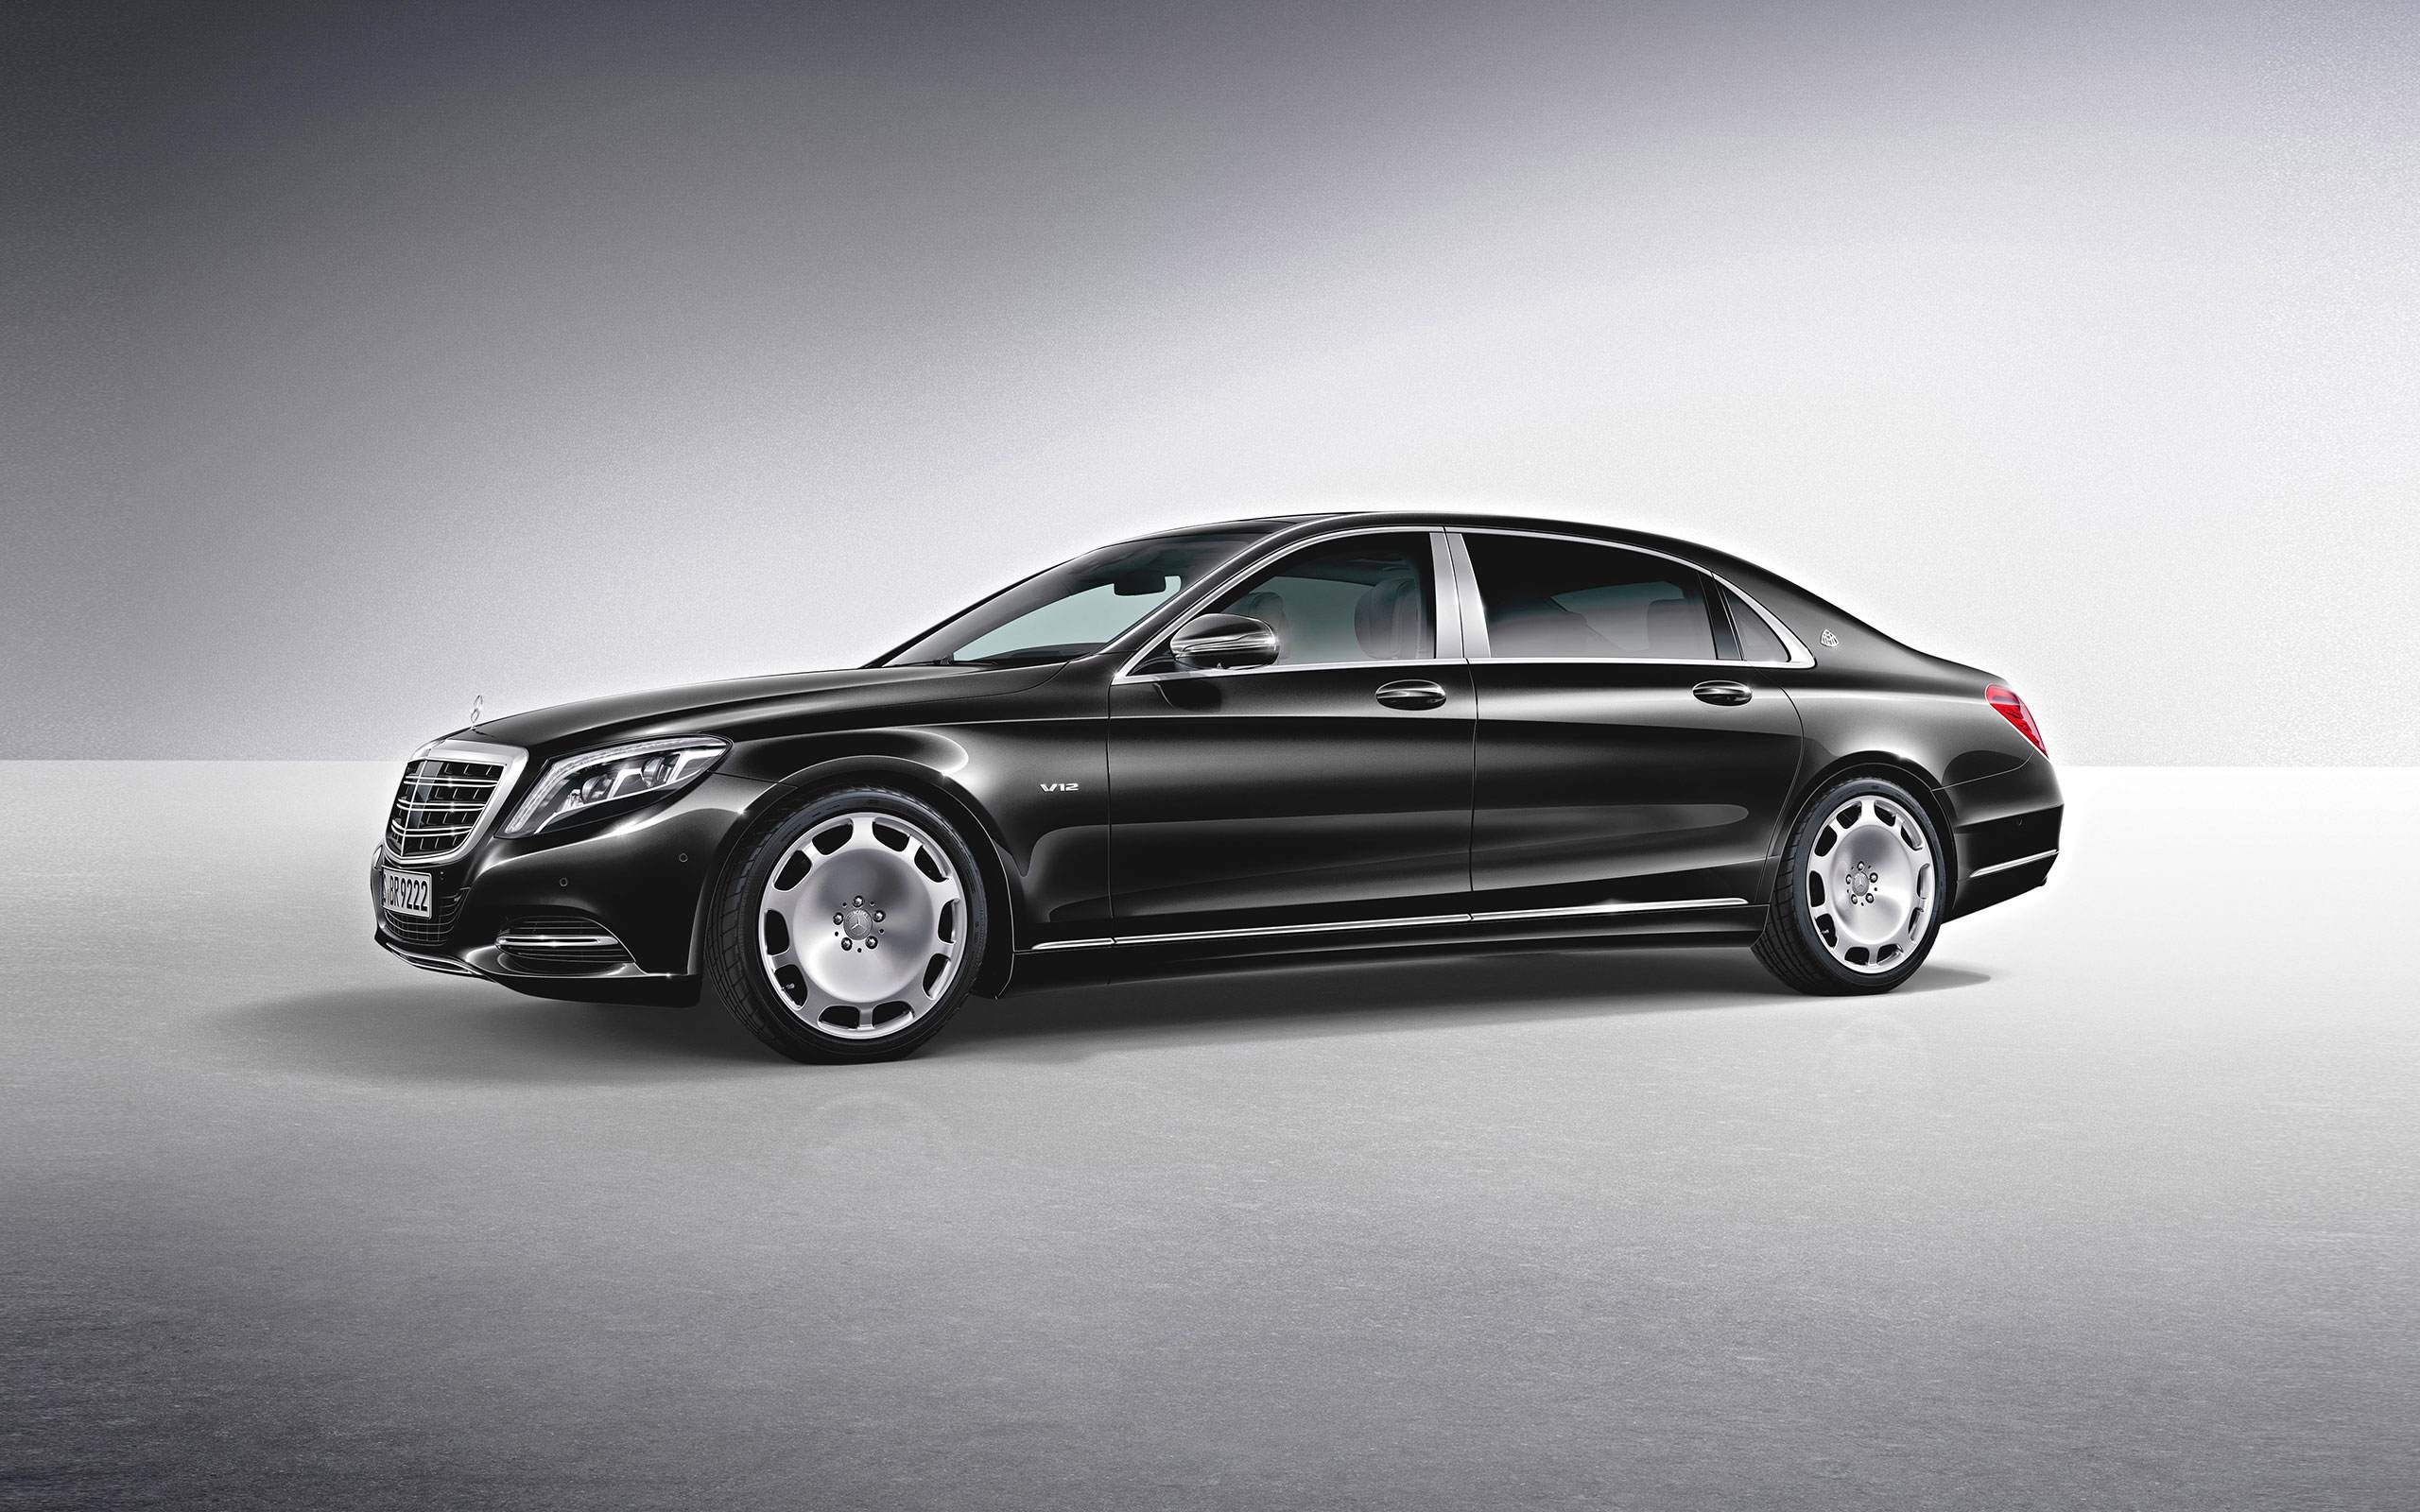 2015-S-CLASS-S600-MAYBACH-FUTURE-GALLERY-003-WR-D